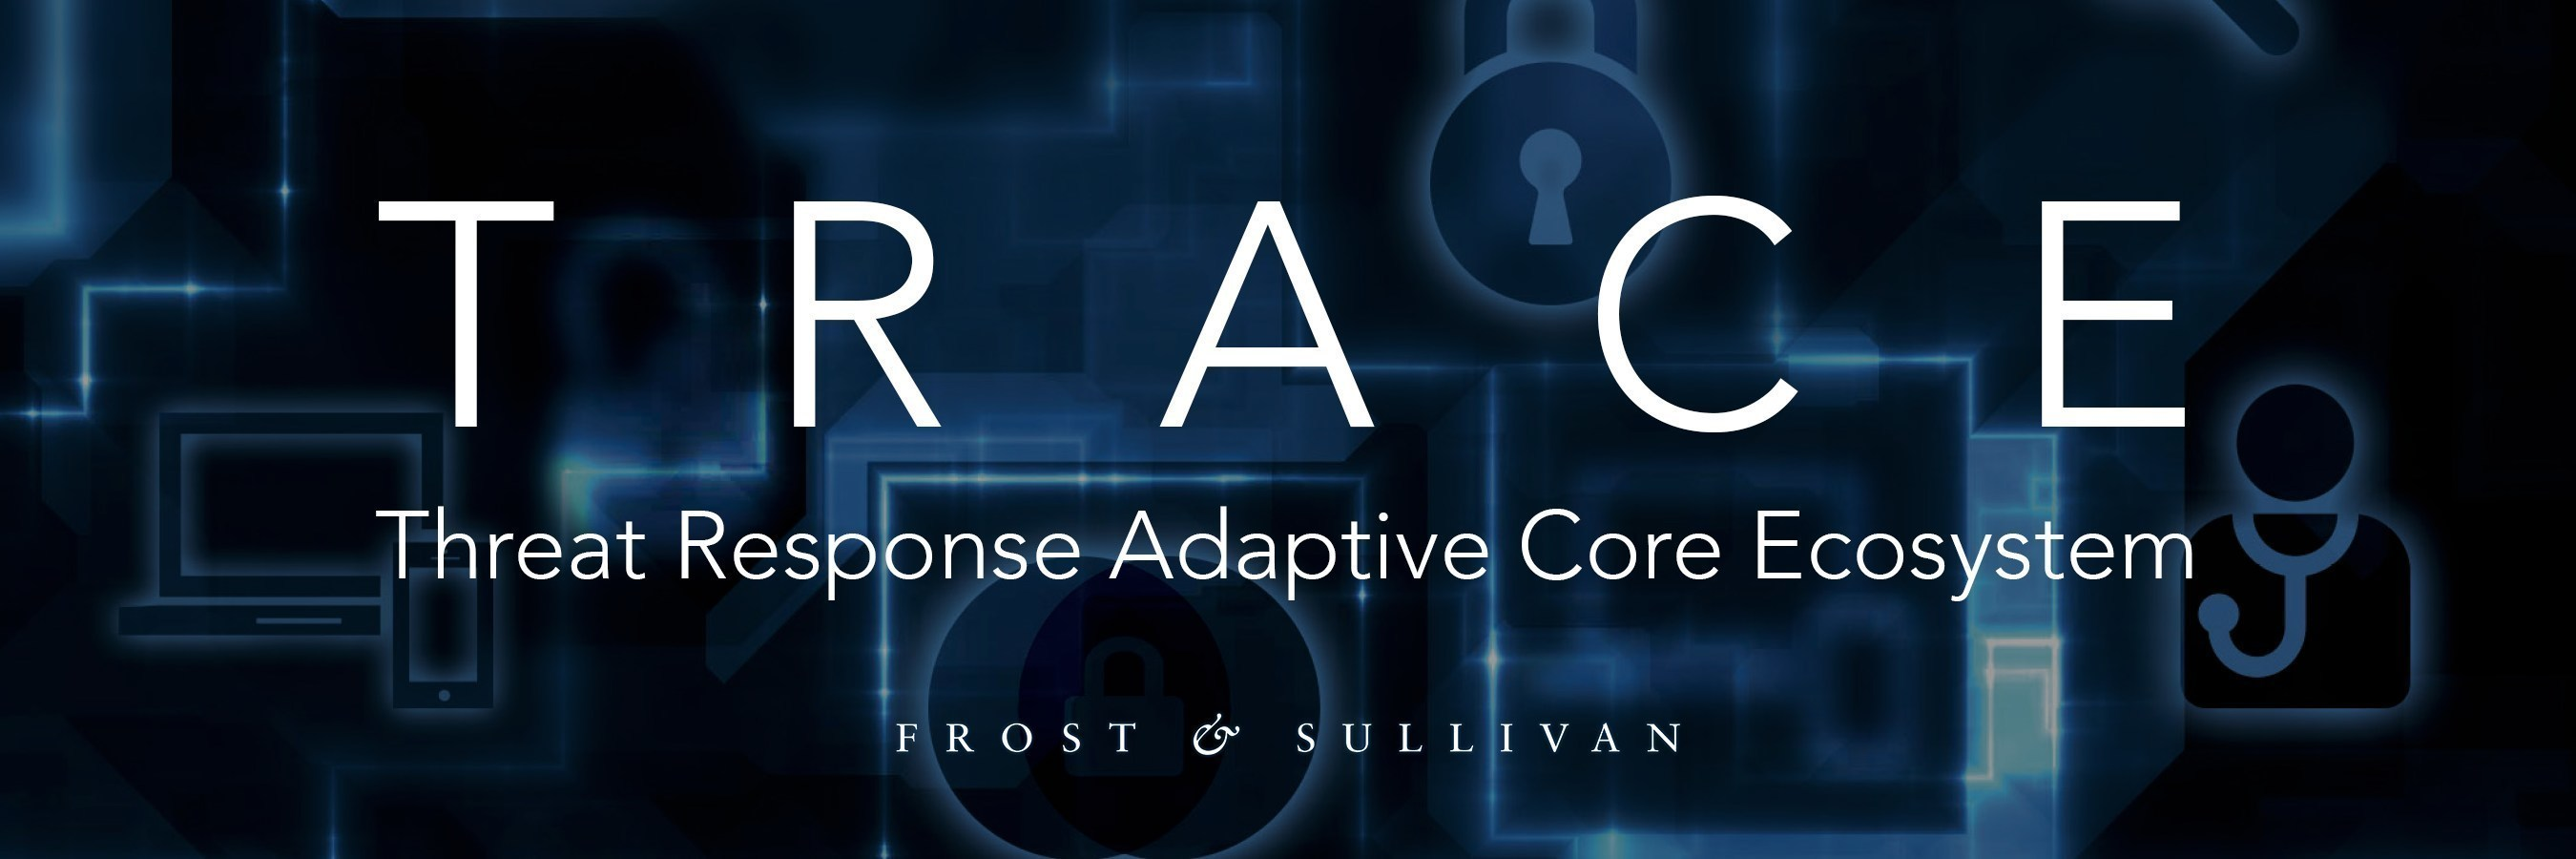 Threat Response Adaptive Core Ecosystem (TRACE) defines the new industry standard for holistic enterprise security, says Frost & Sullivan